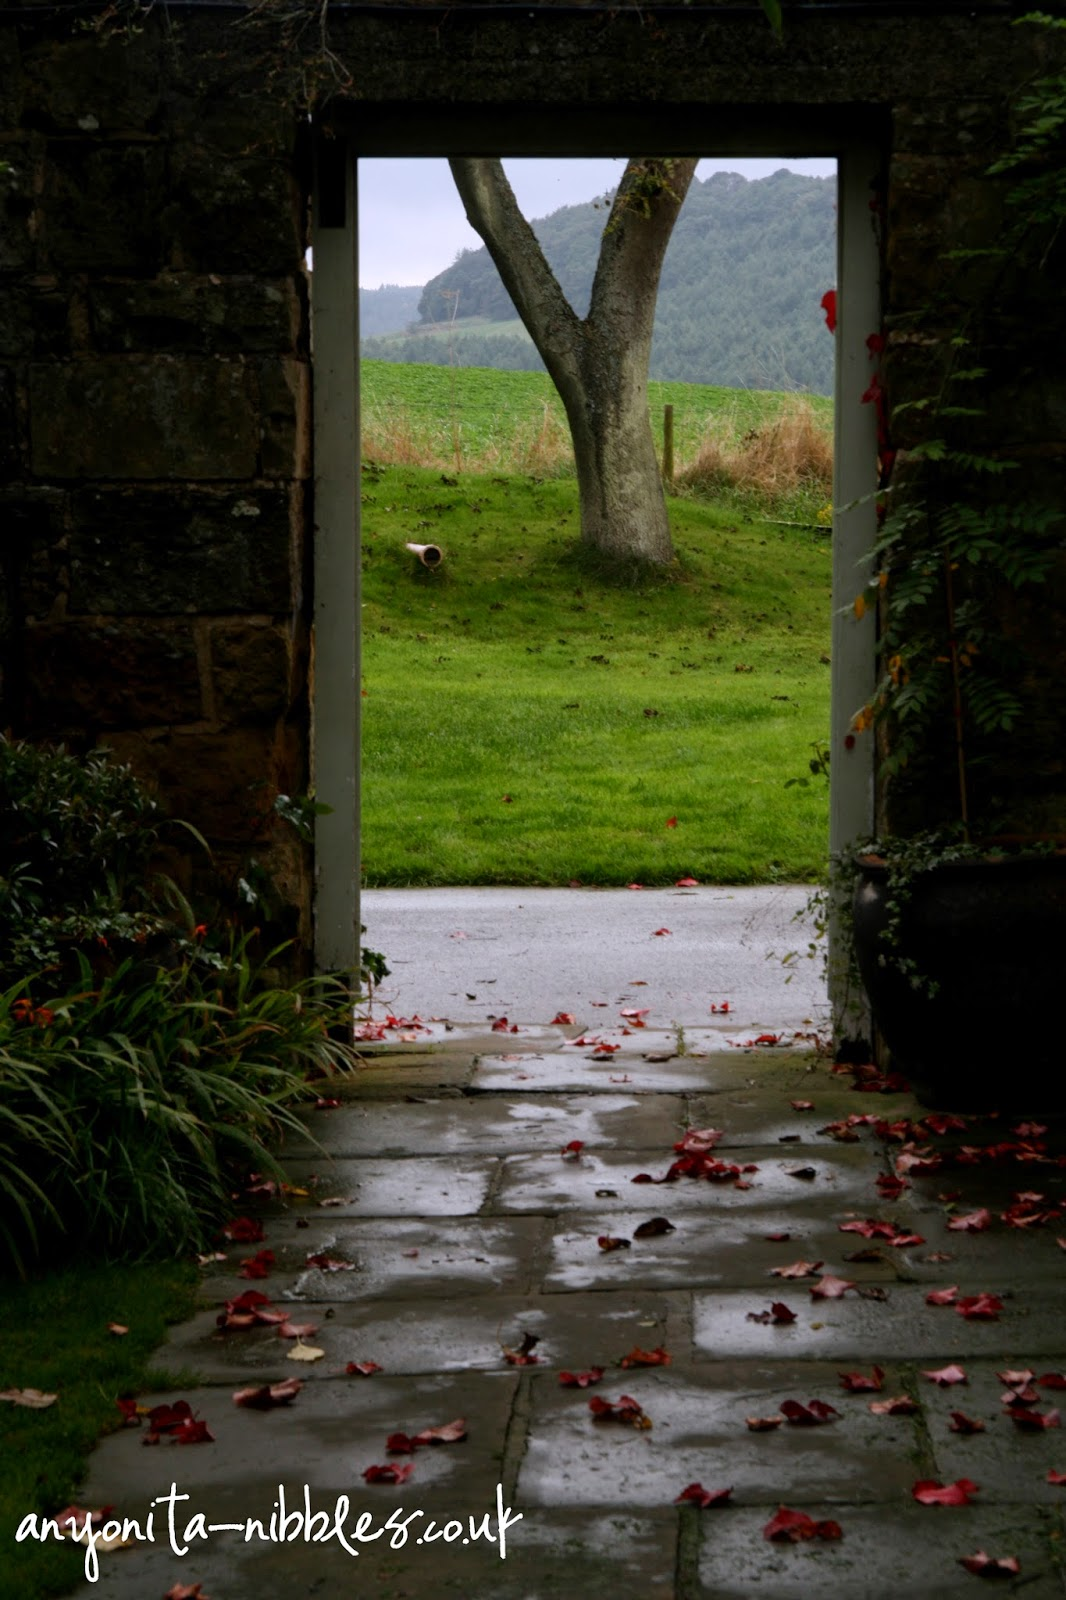 Walk through and into a tranquil pasture at Ox Pasture Hall Hotel | Anyonita-nibbles.co.uk